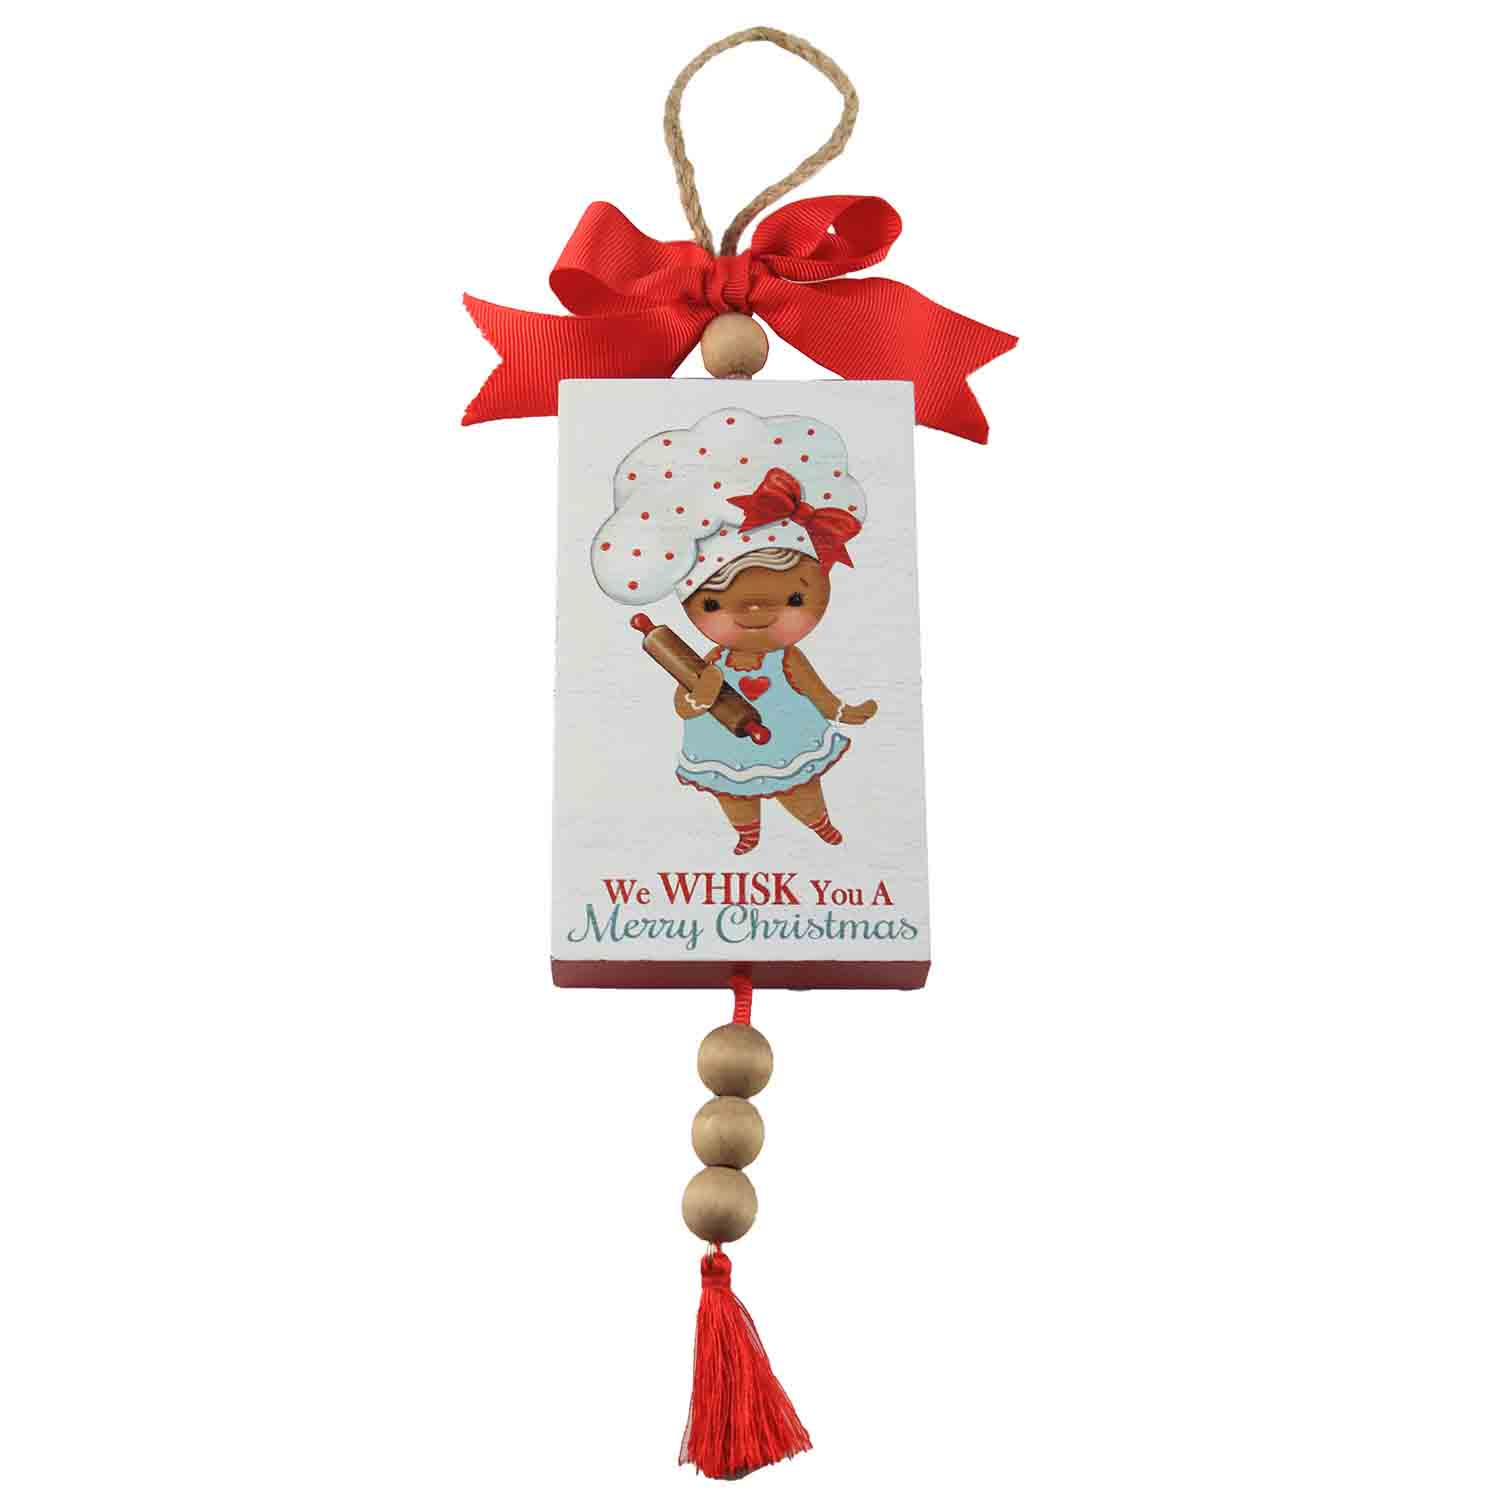 Whisk You A Merry Christmas Wooden Sign